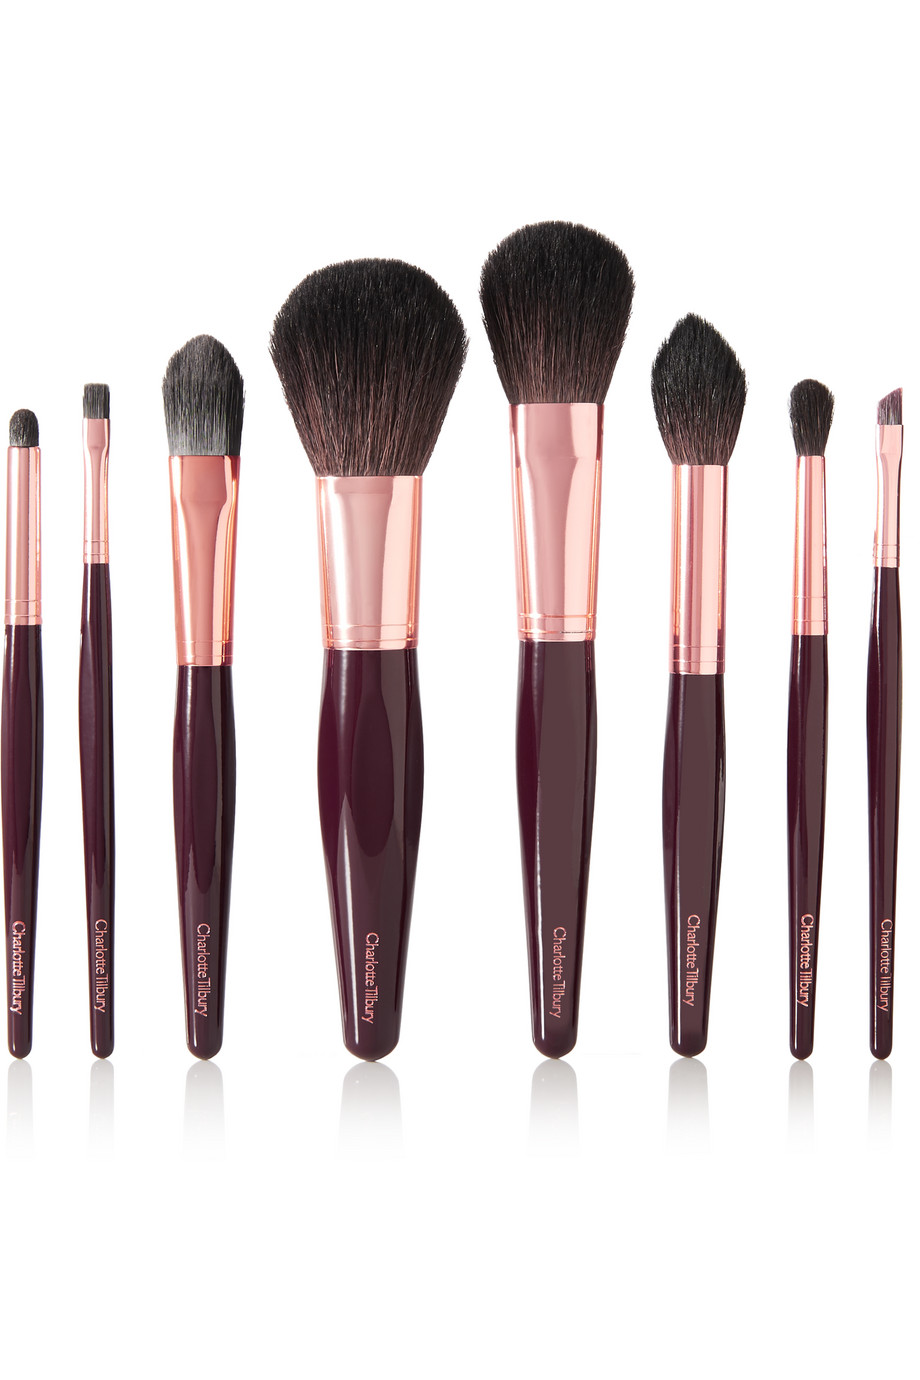 Charlotte Tilbury The Complete Brush Set